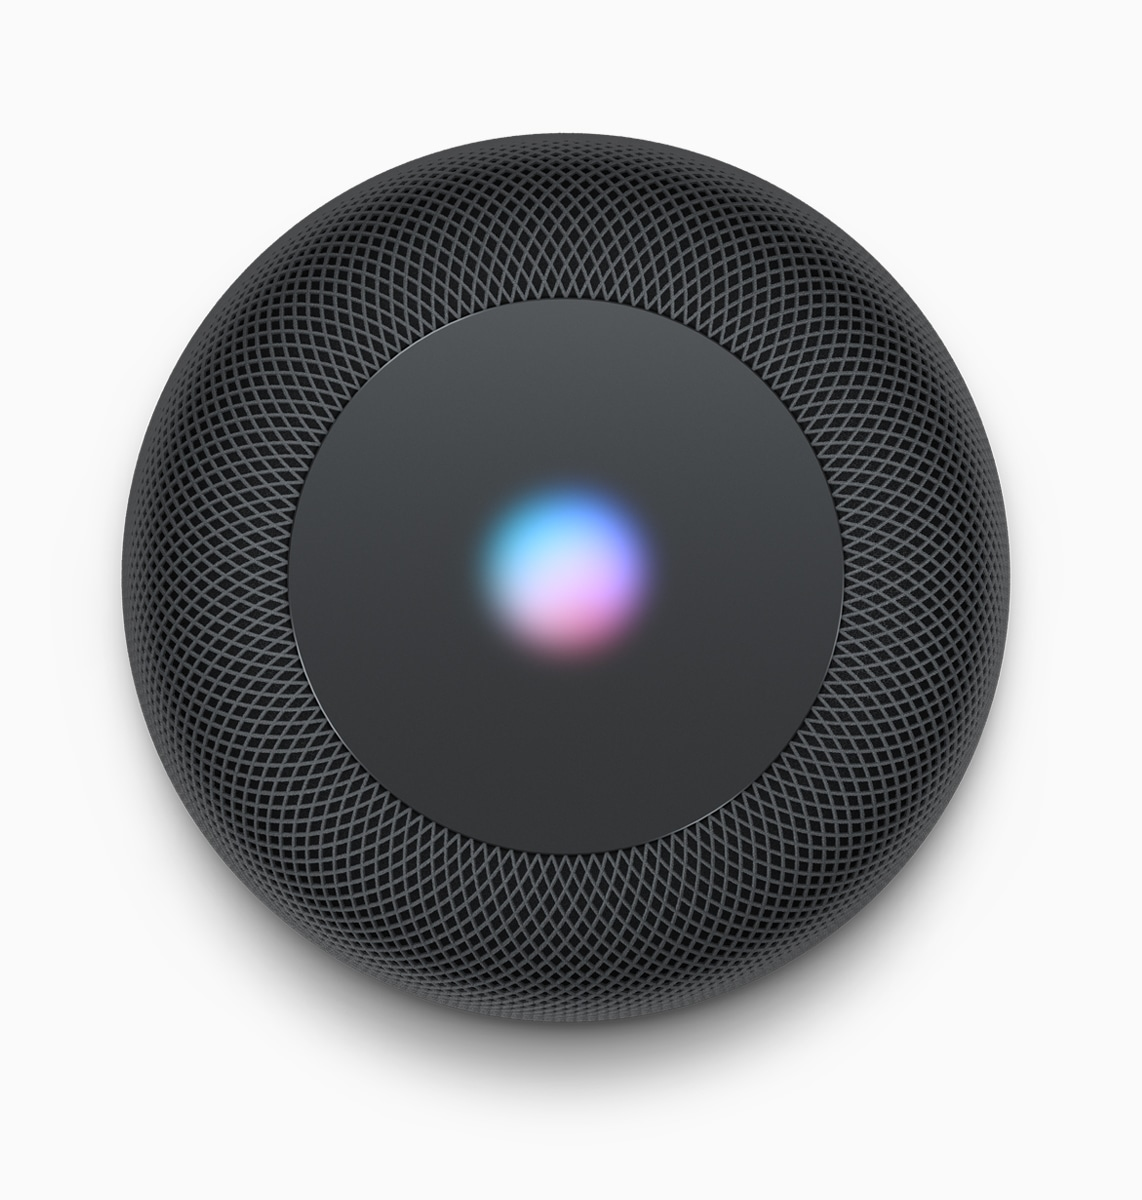 Black top homePod with Siri